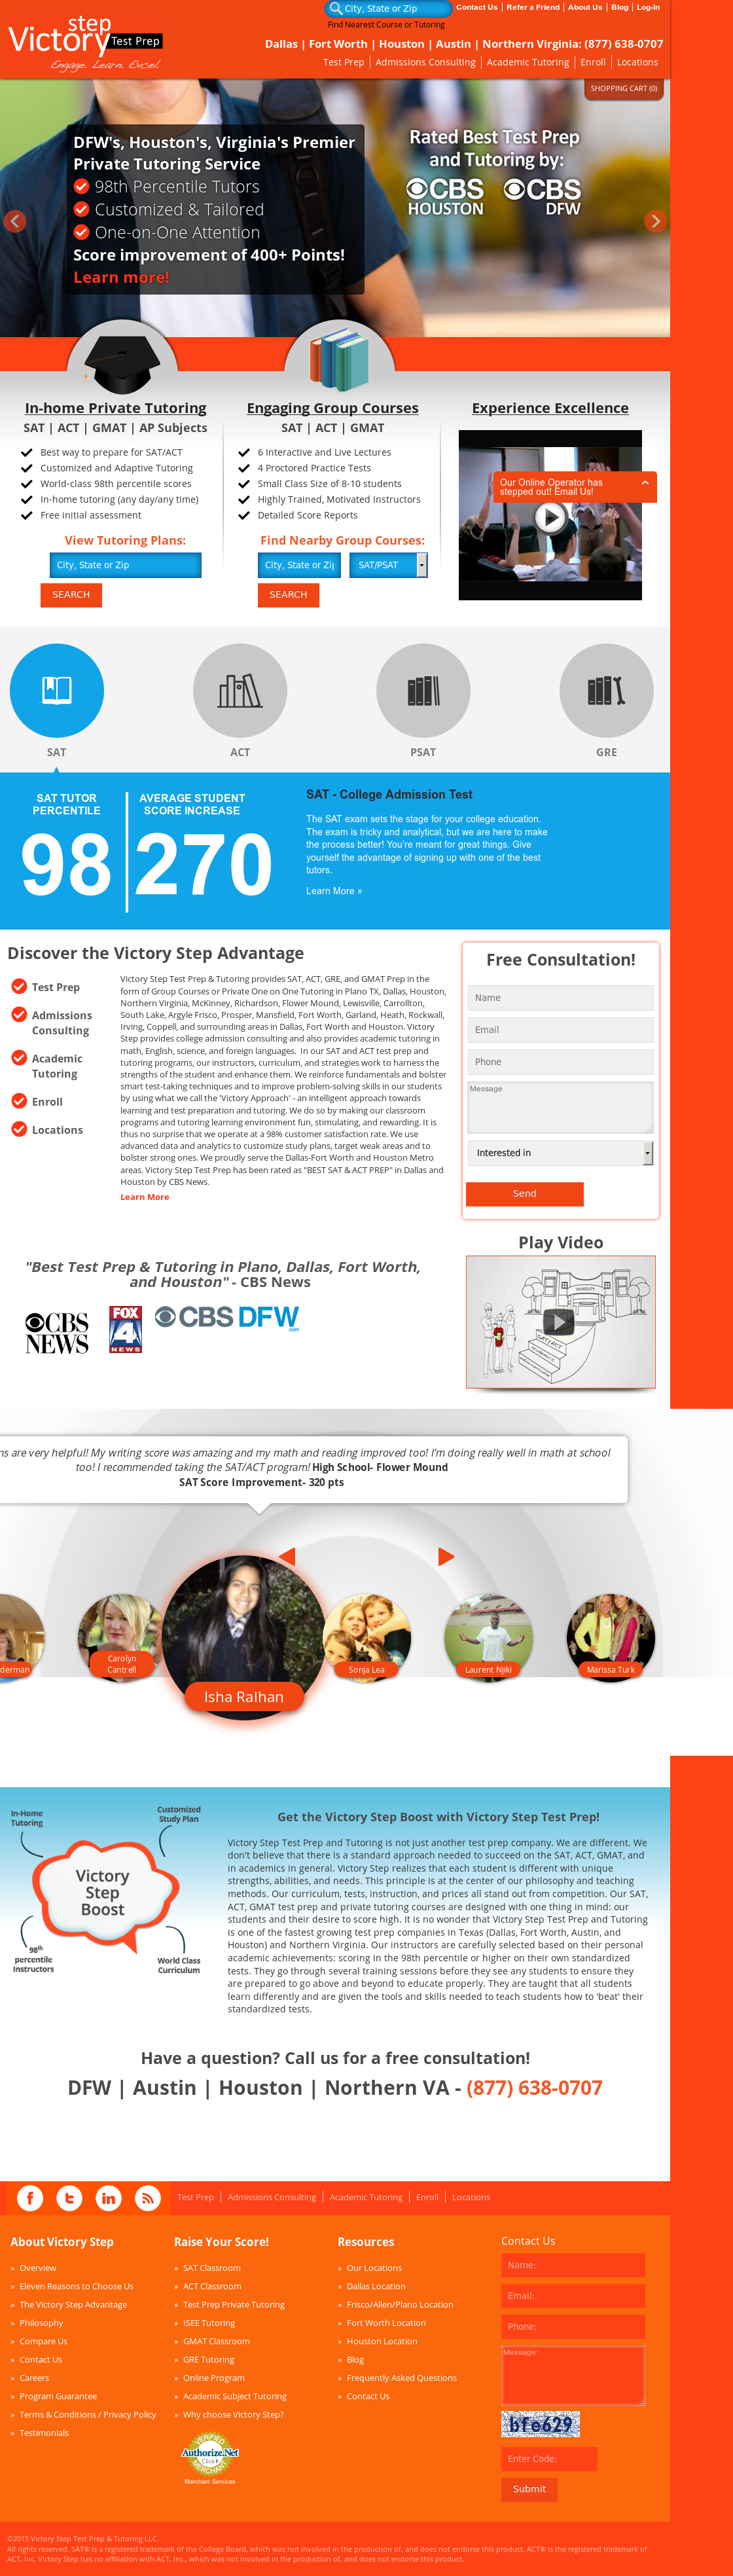 Victory Step Test Prep & Tutoring Competitors, Revenue and